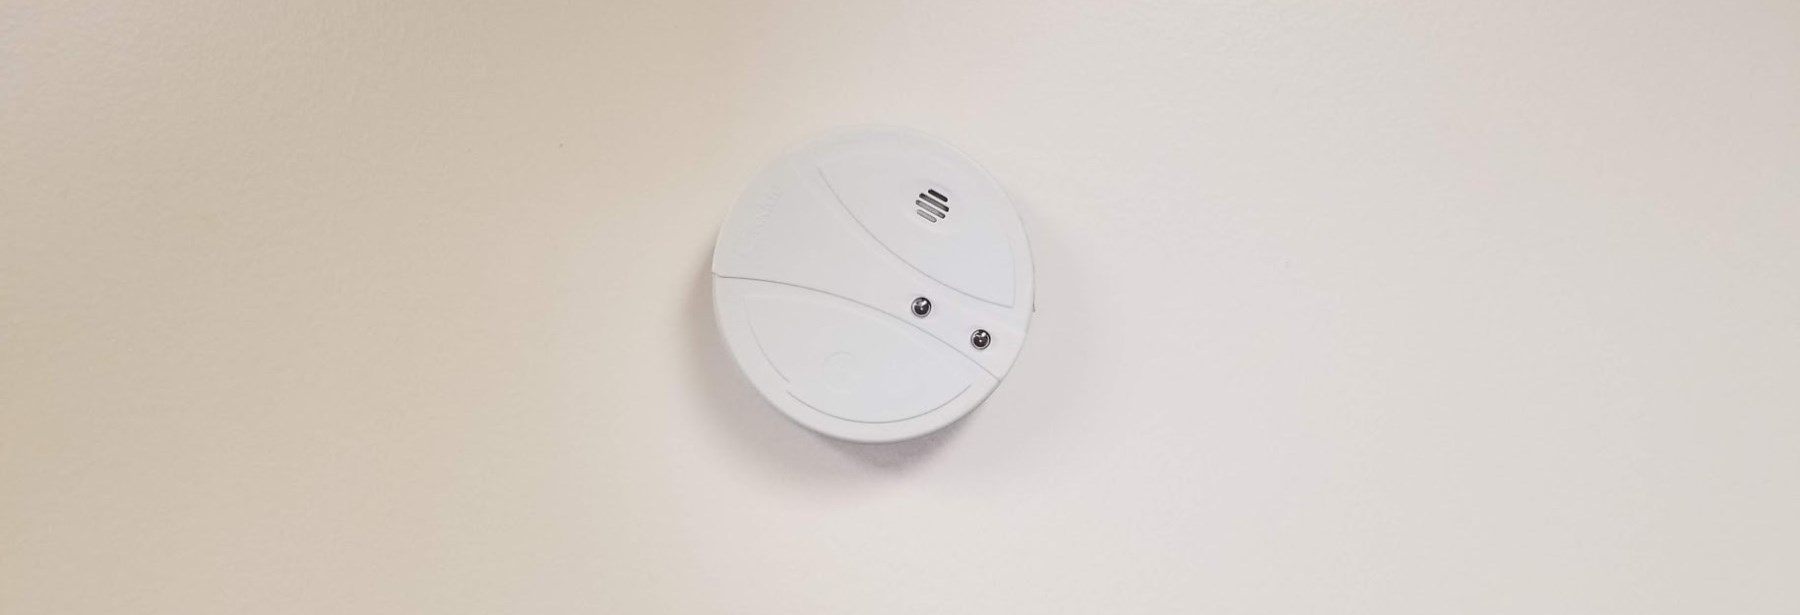 smoke alarm on a ceiling